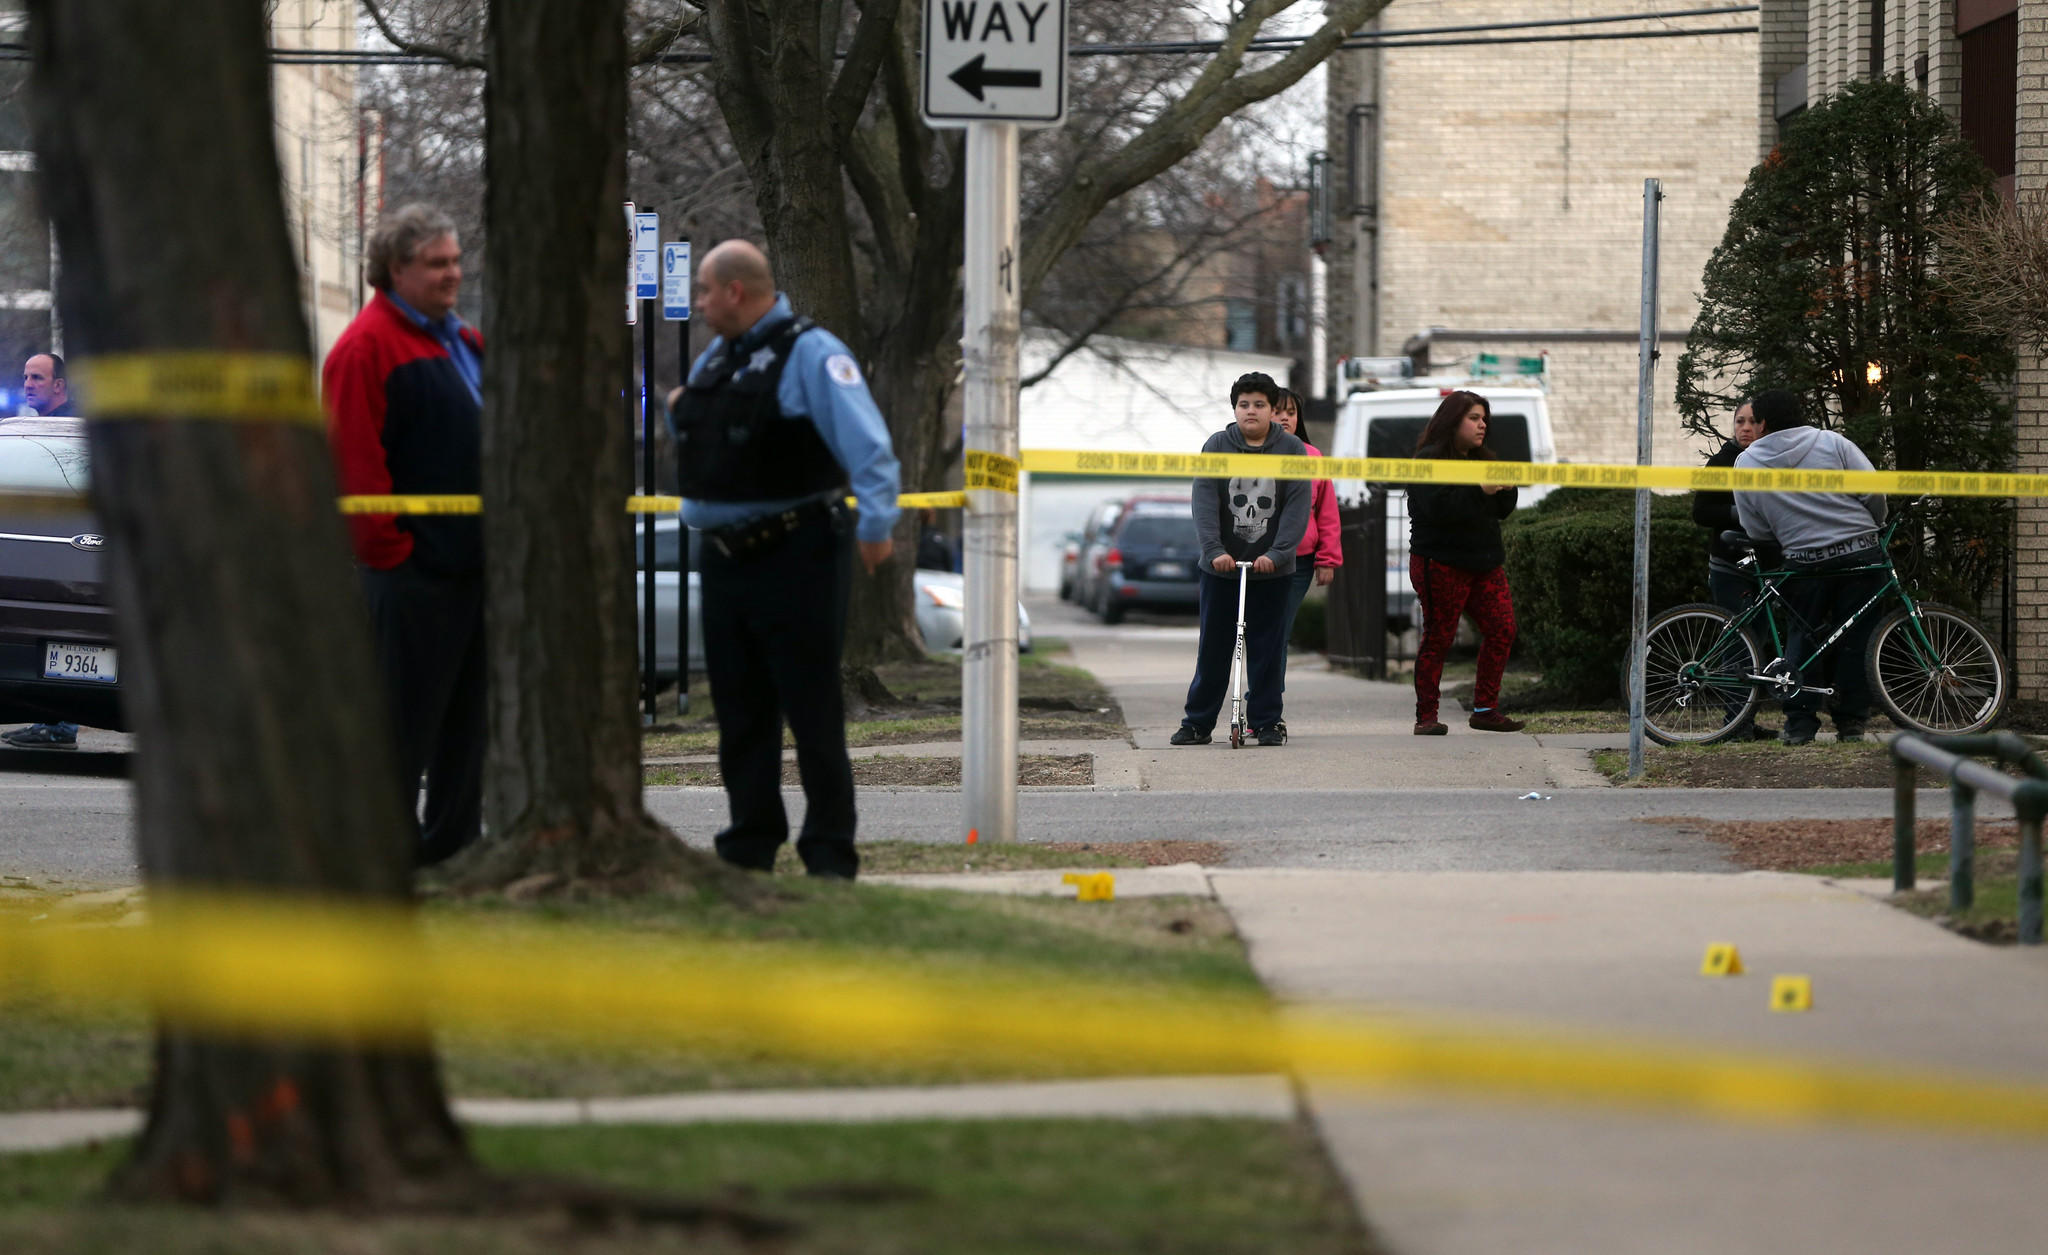 Neighbors watch as Chicago police respond to a shooting in the 5200 block of N. Rockwell Ave.